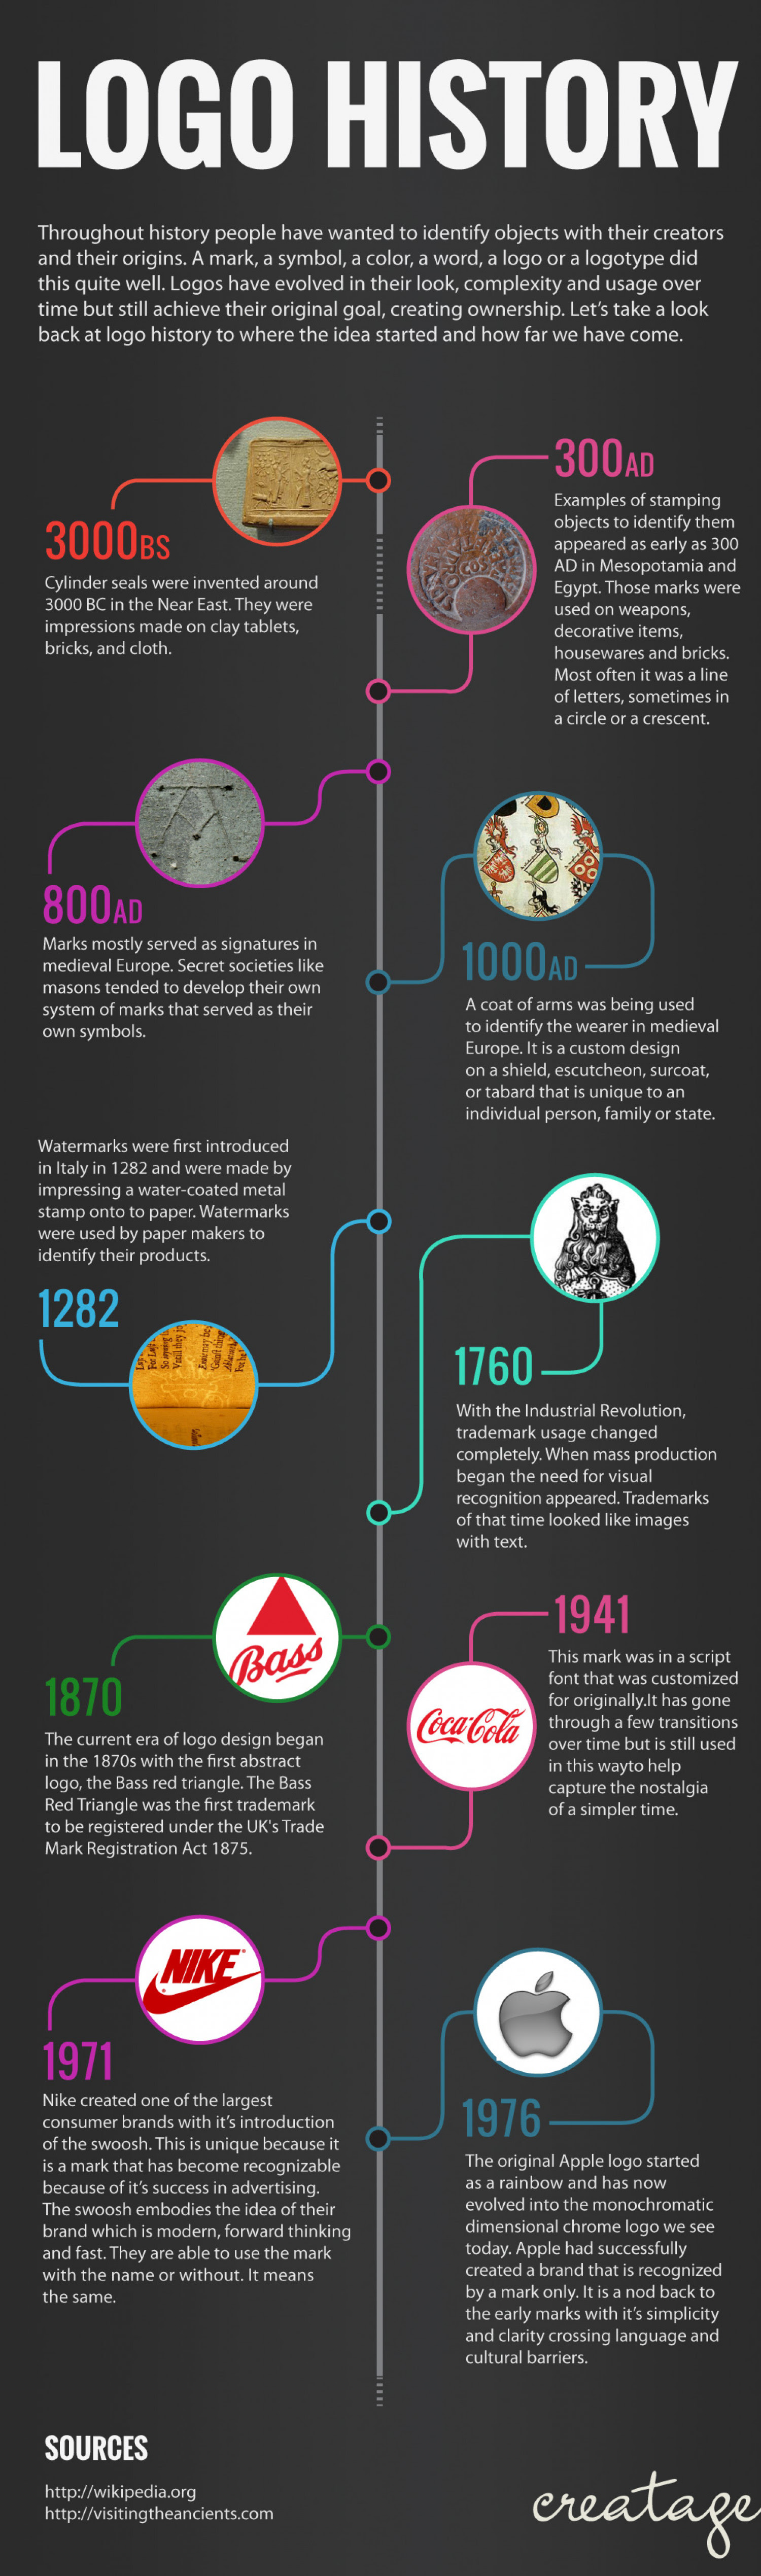 Logo Design History Of Most Famous Brands Of The World ...